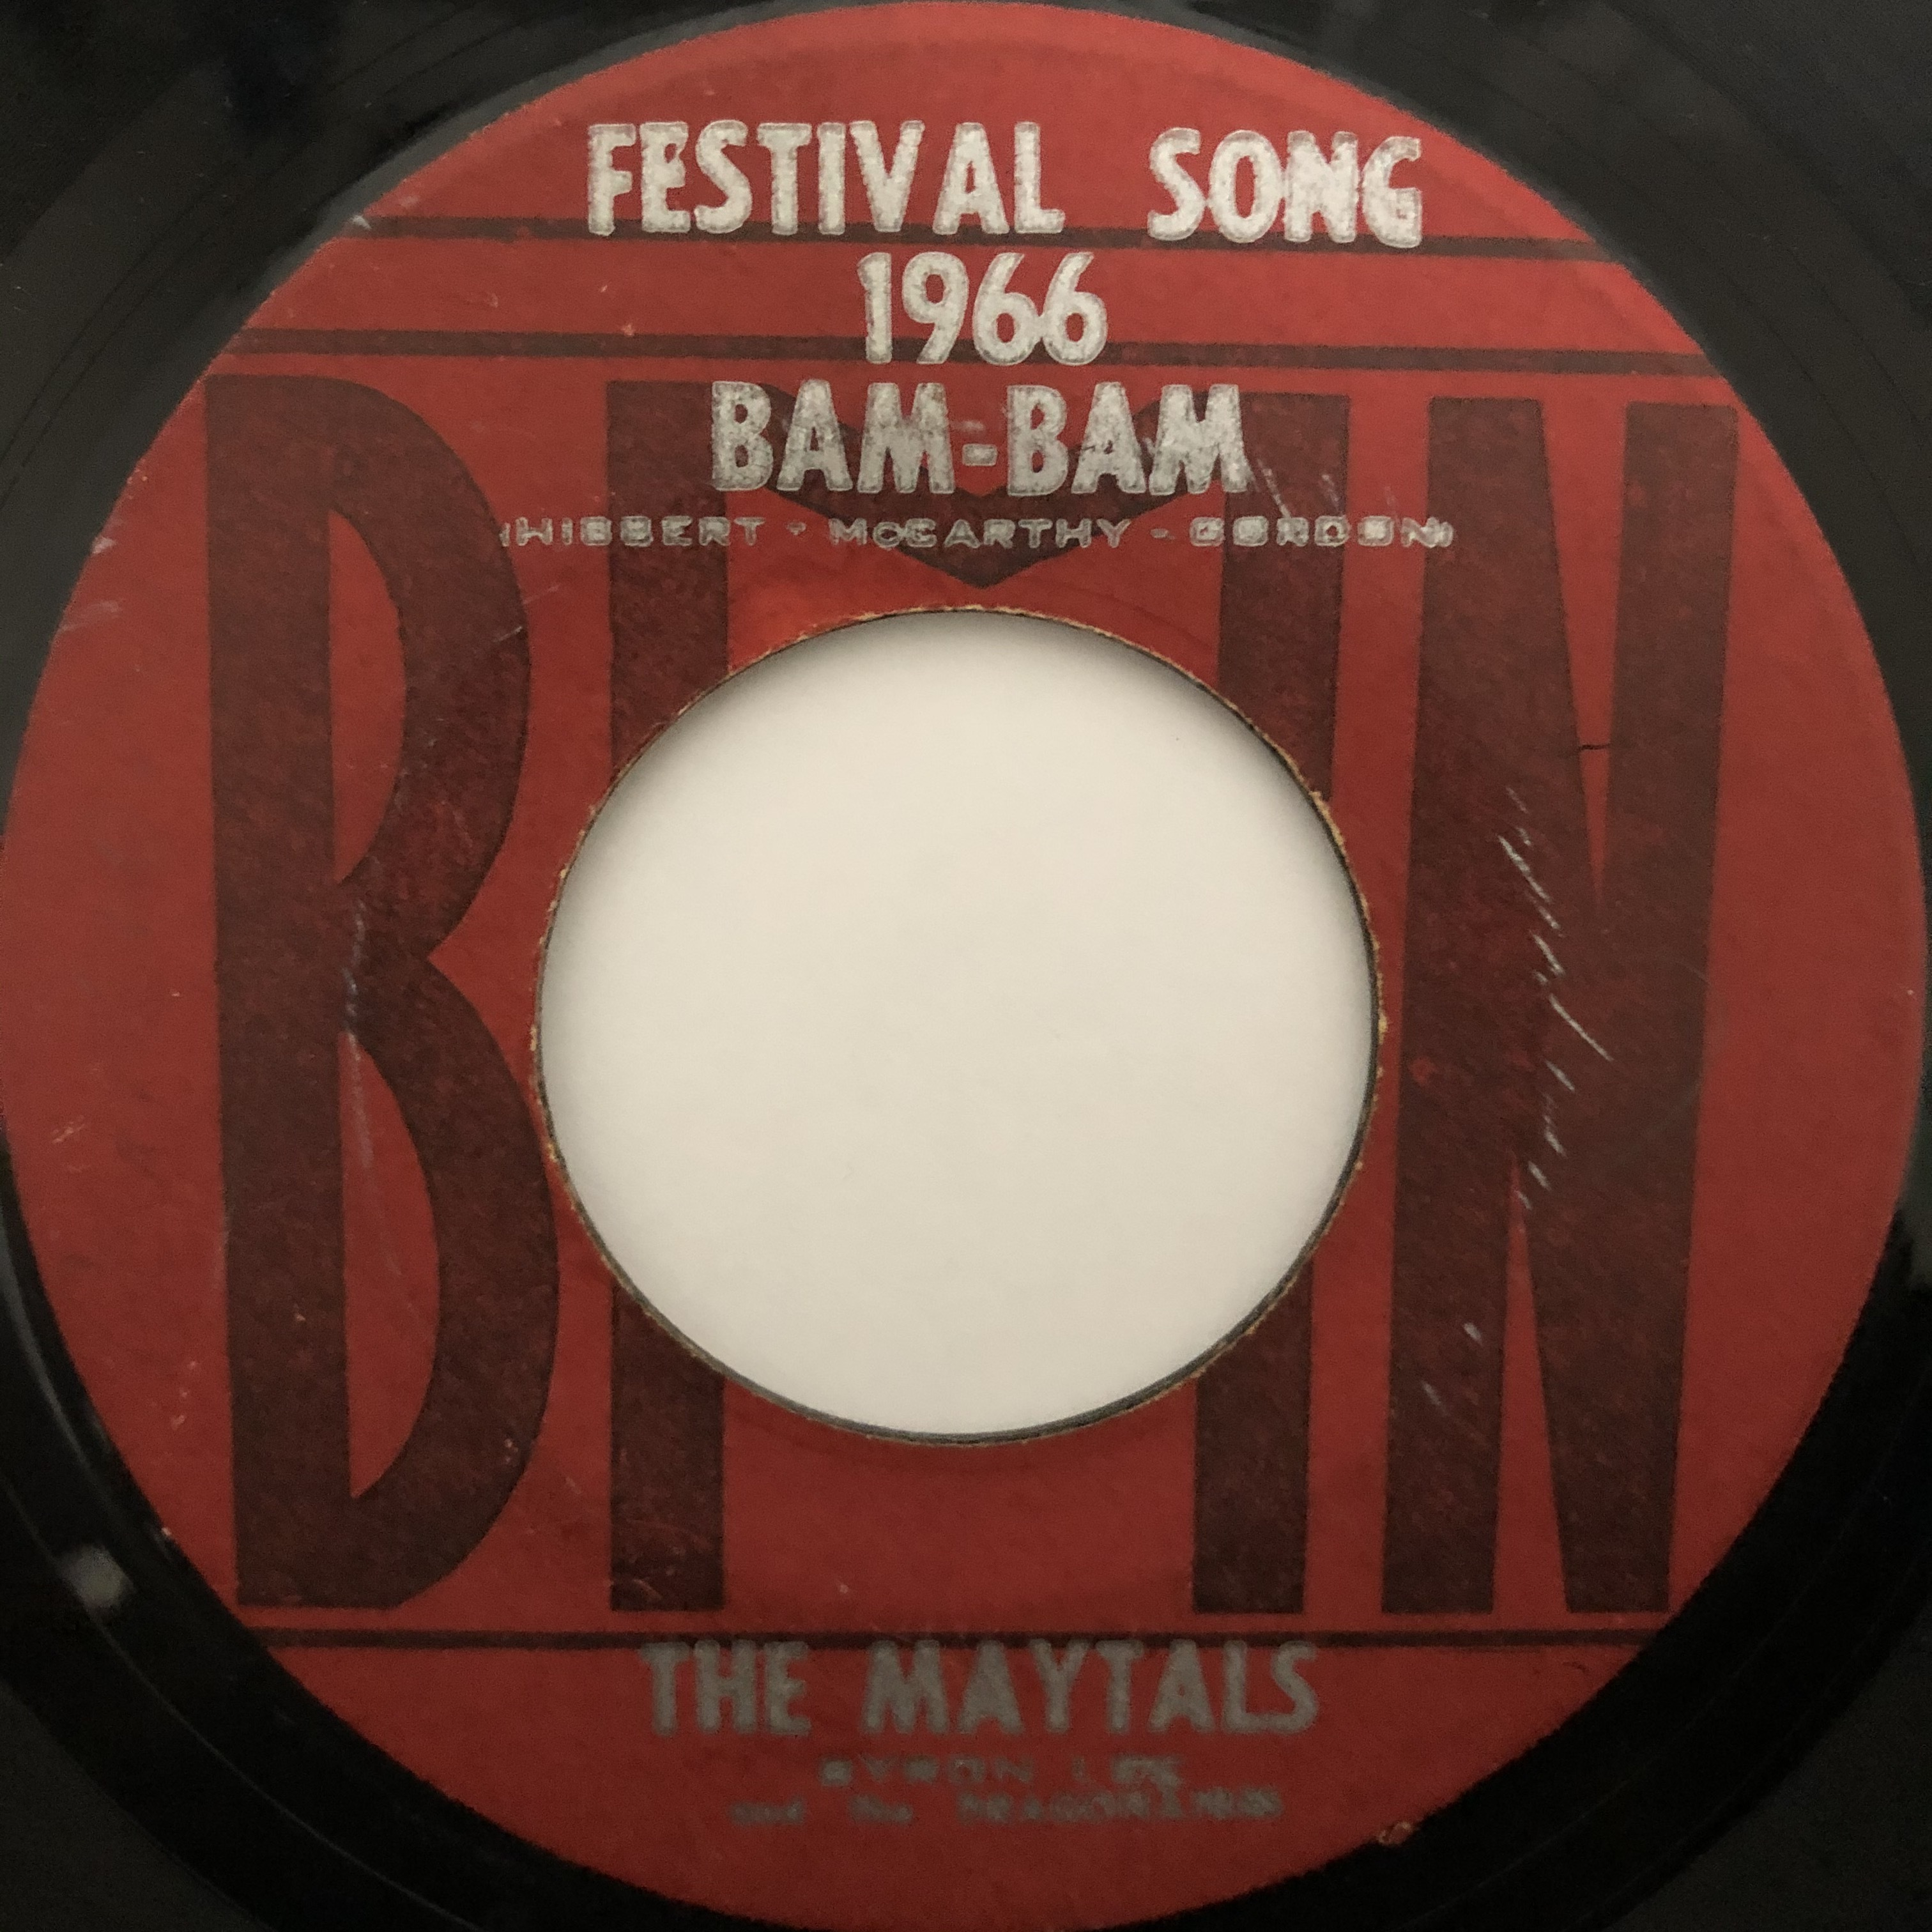 The Maytals, Byron Lee, The Dragonaires - Bam-Bam【7-20455】